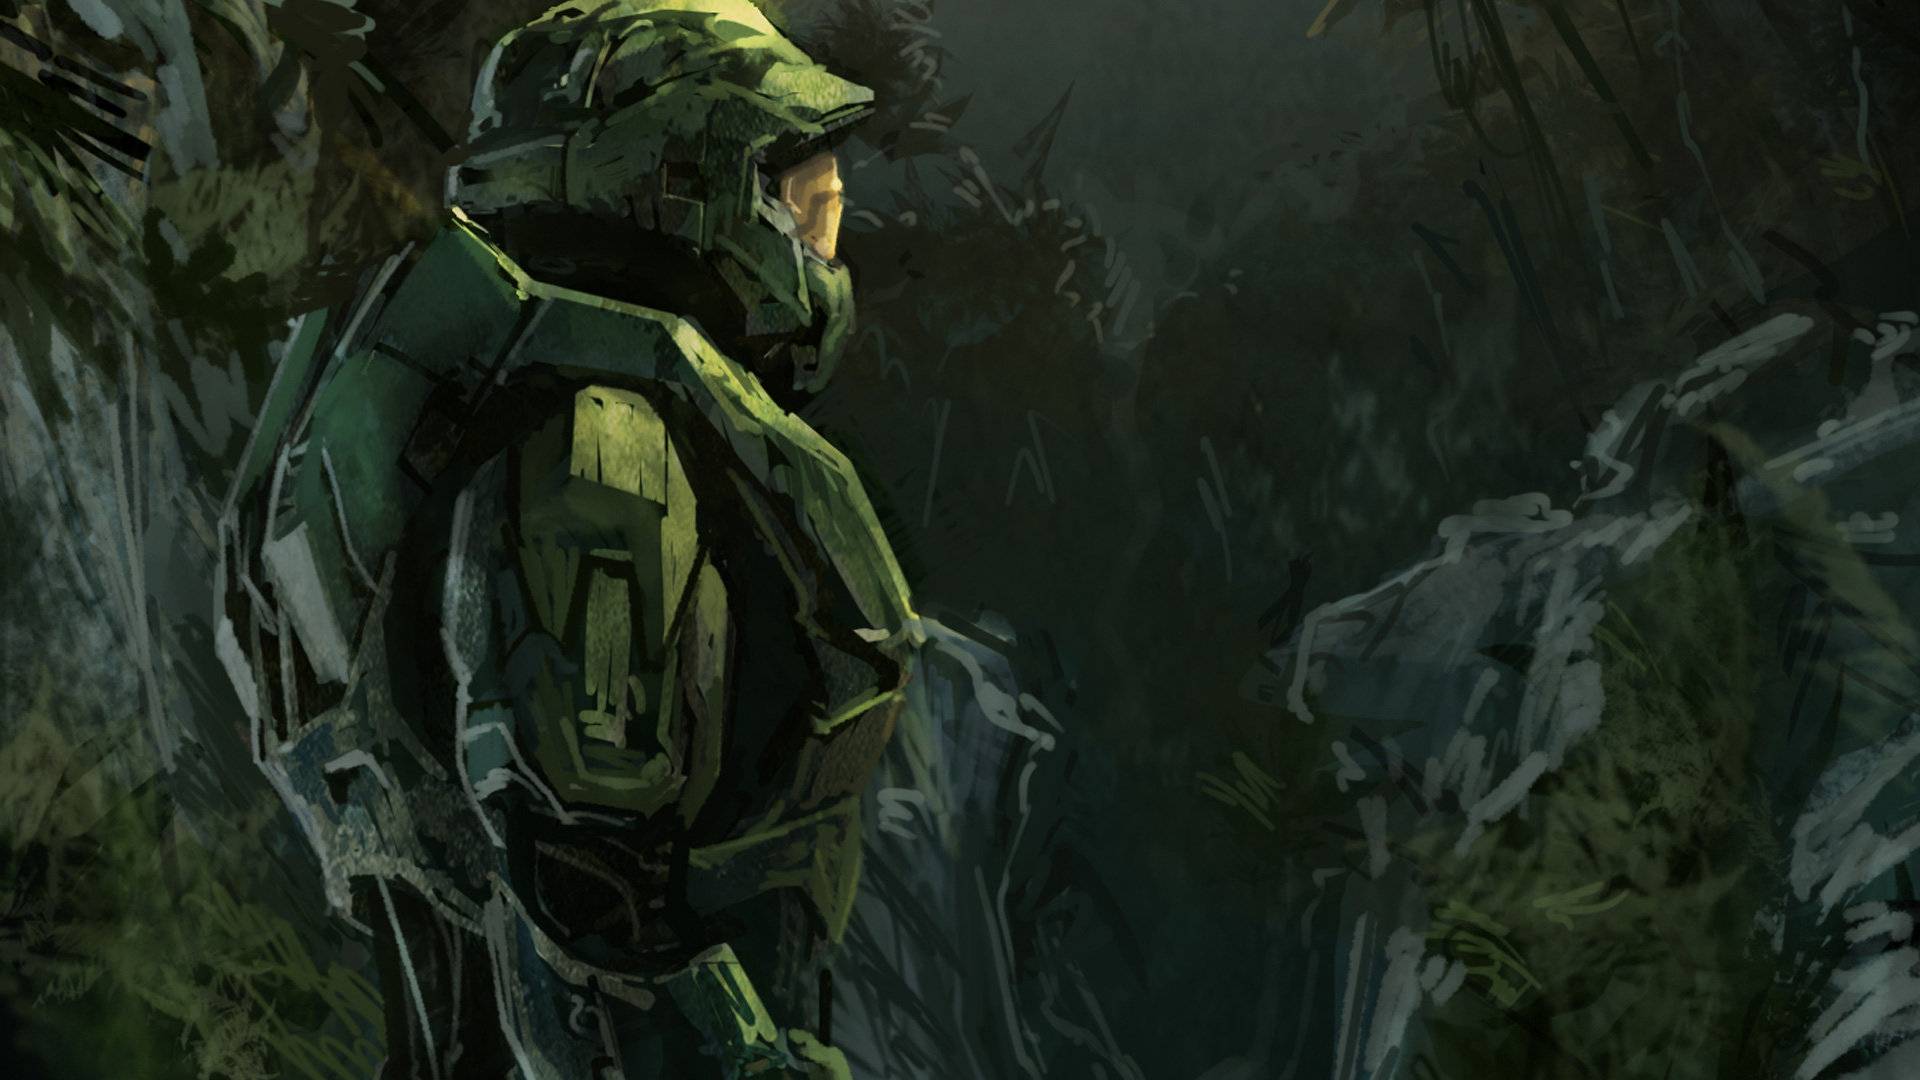 Halo 3 Wallpaper in 1920x1080